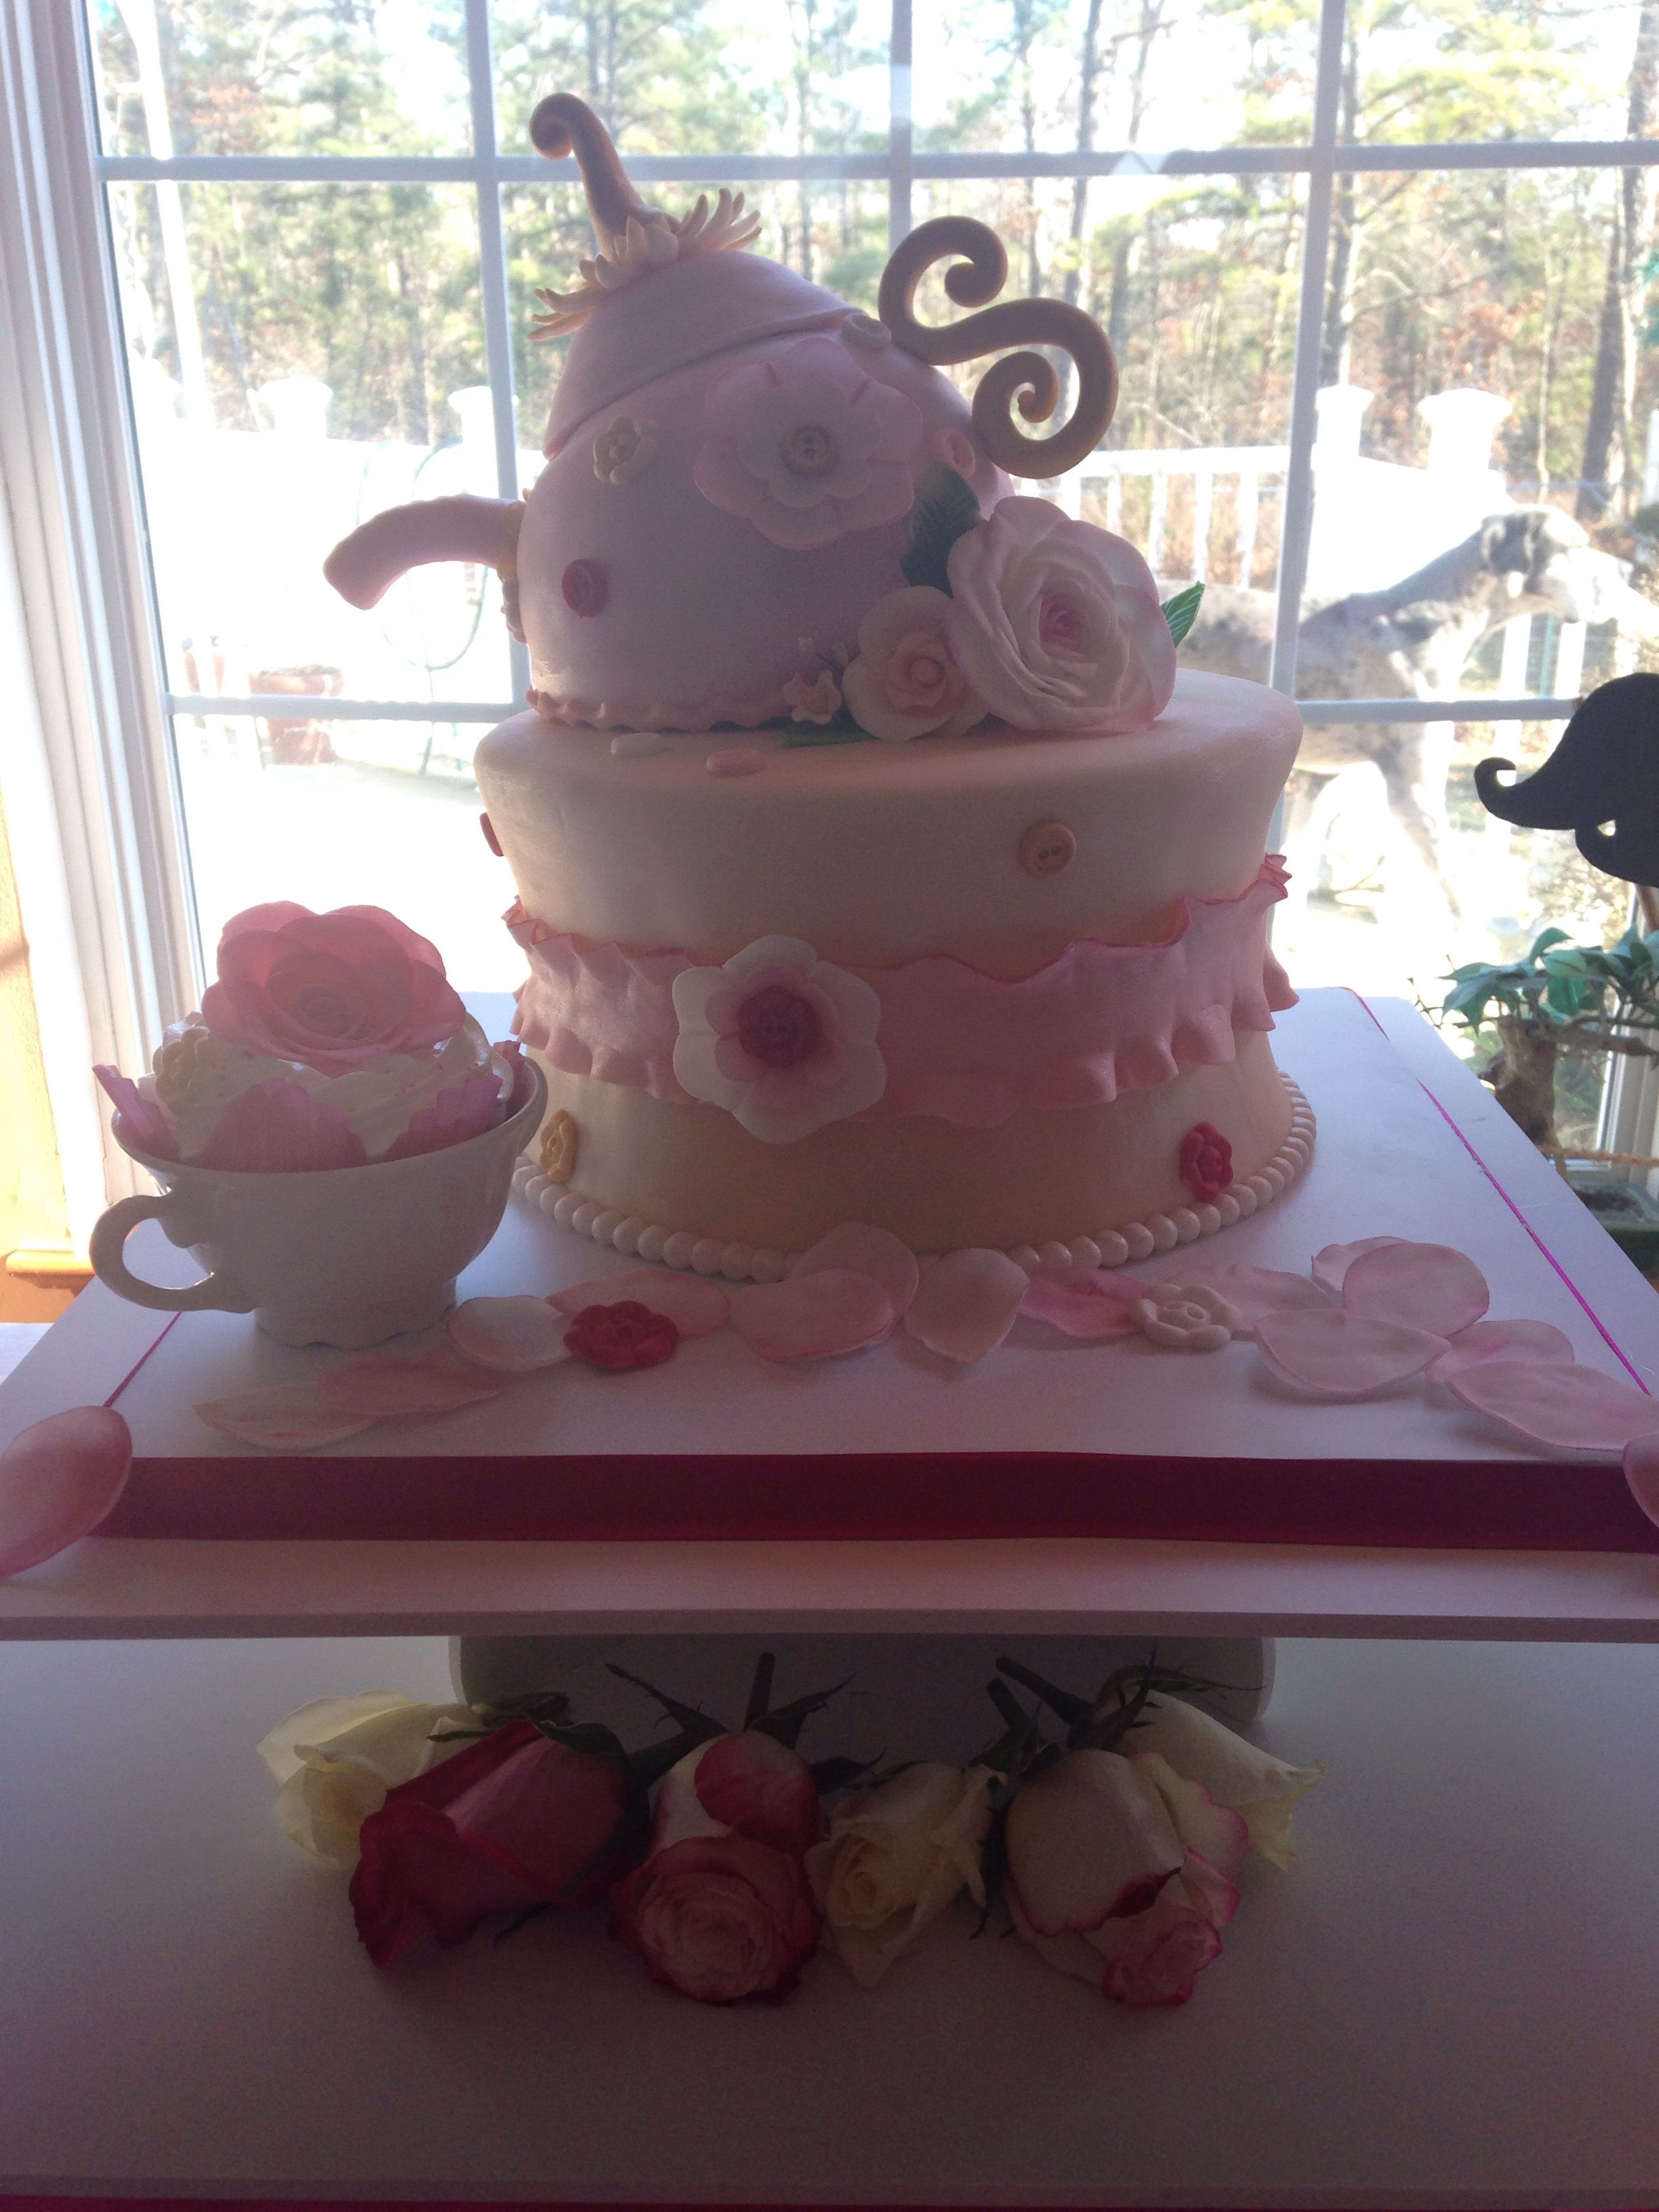 My tea party bridal shower cake